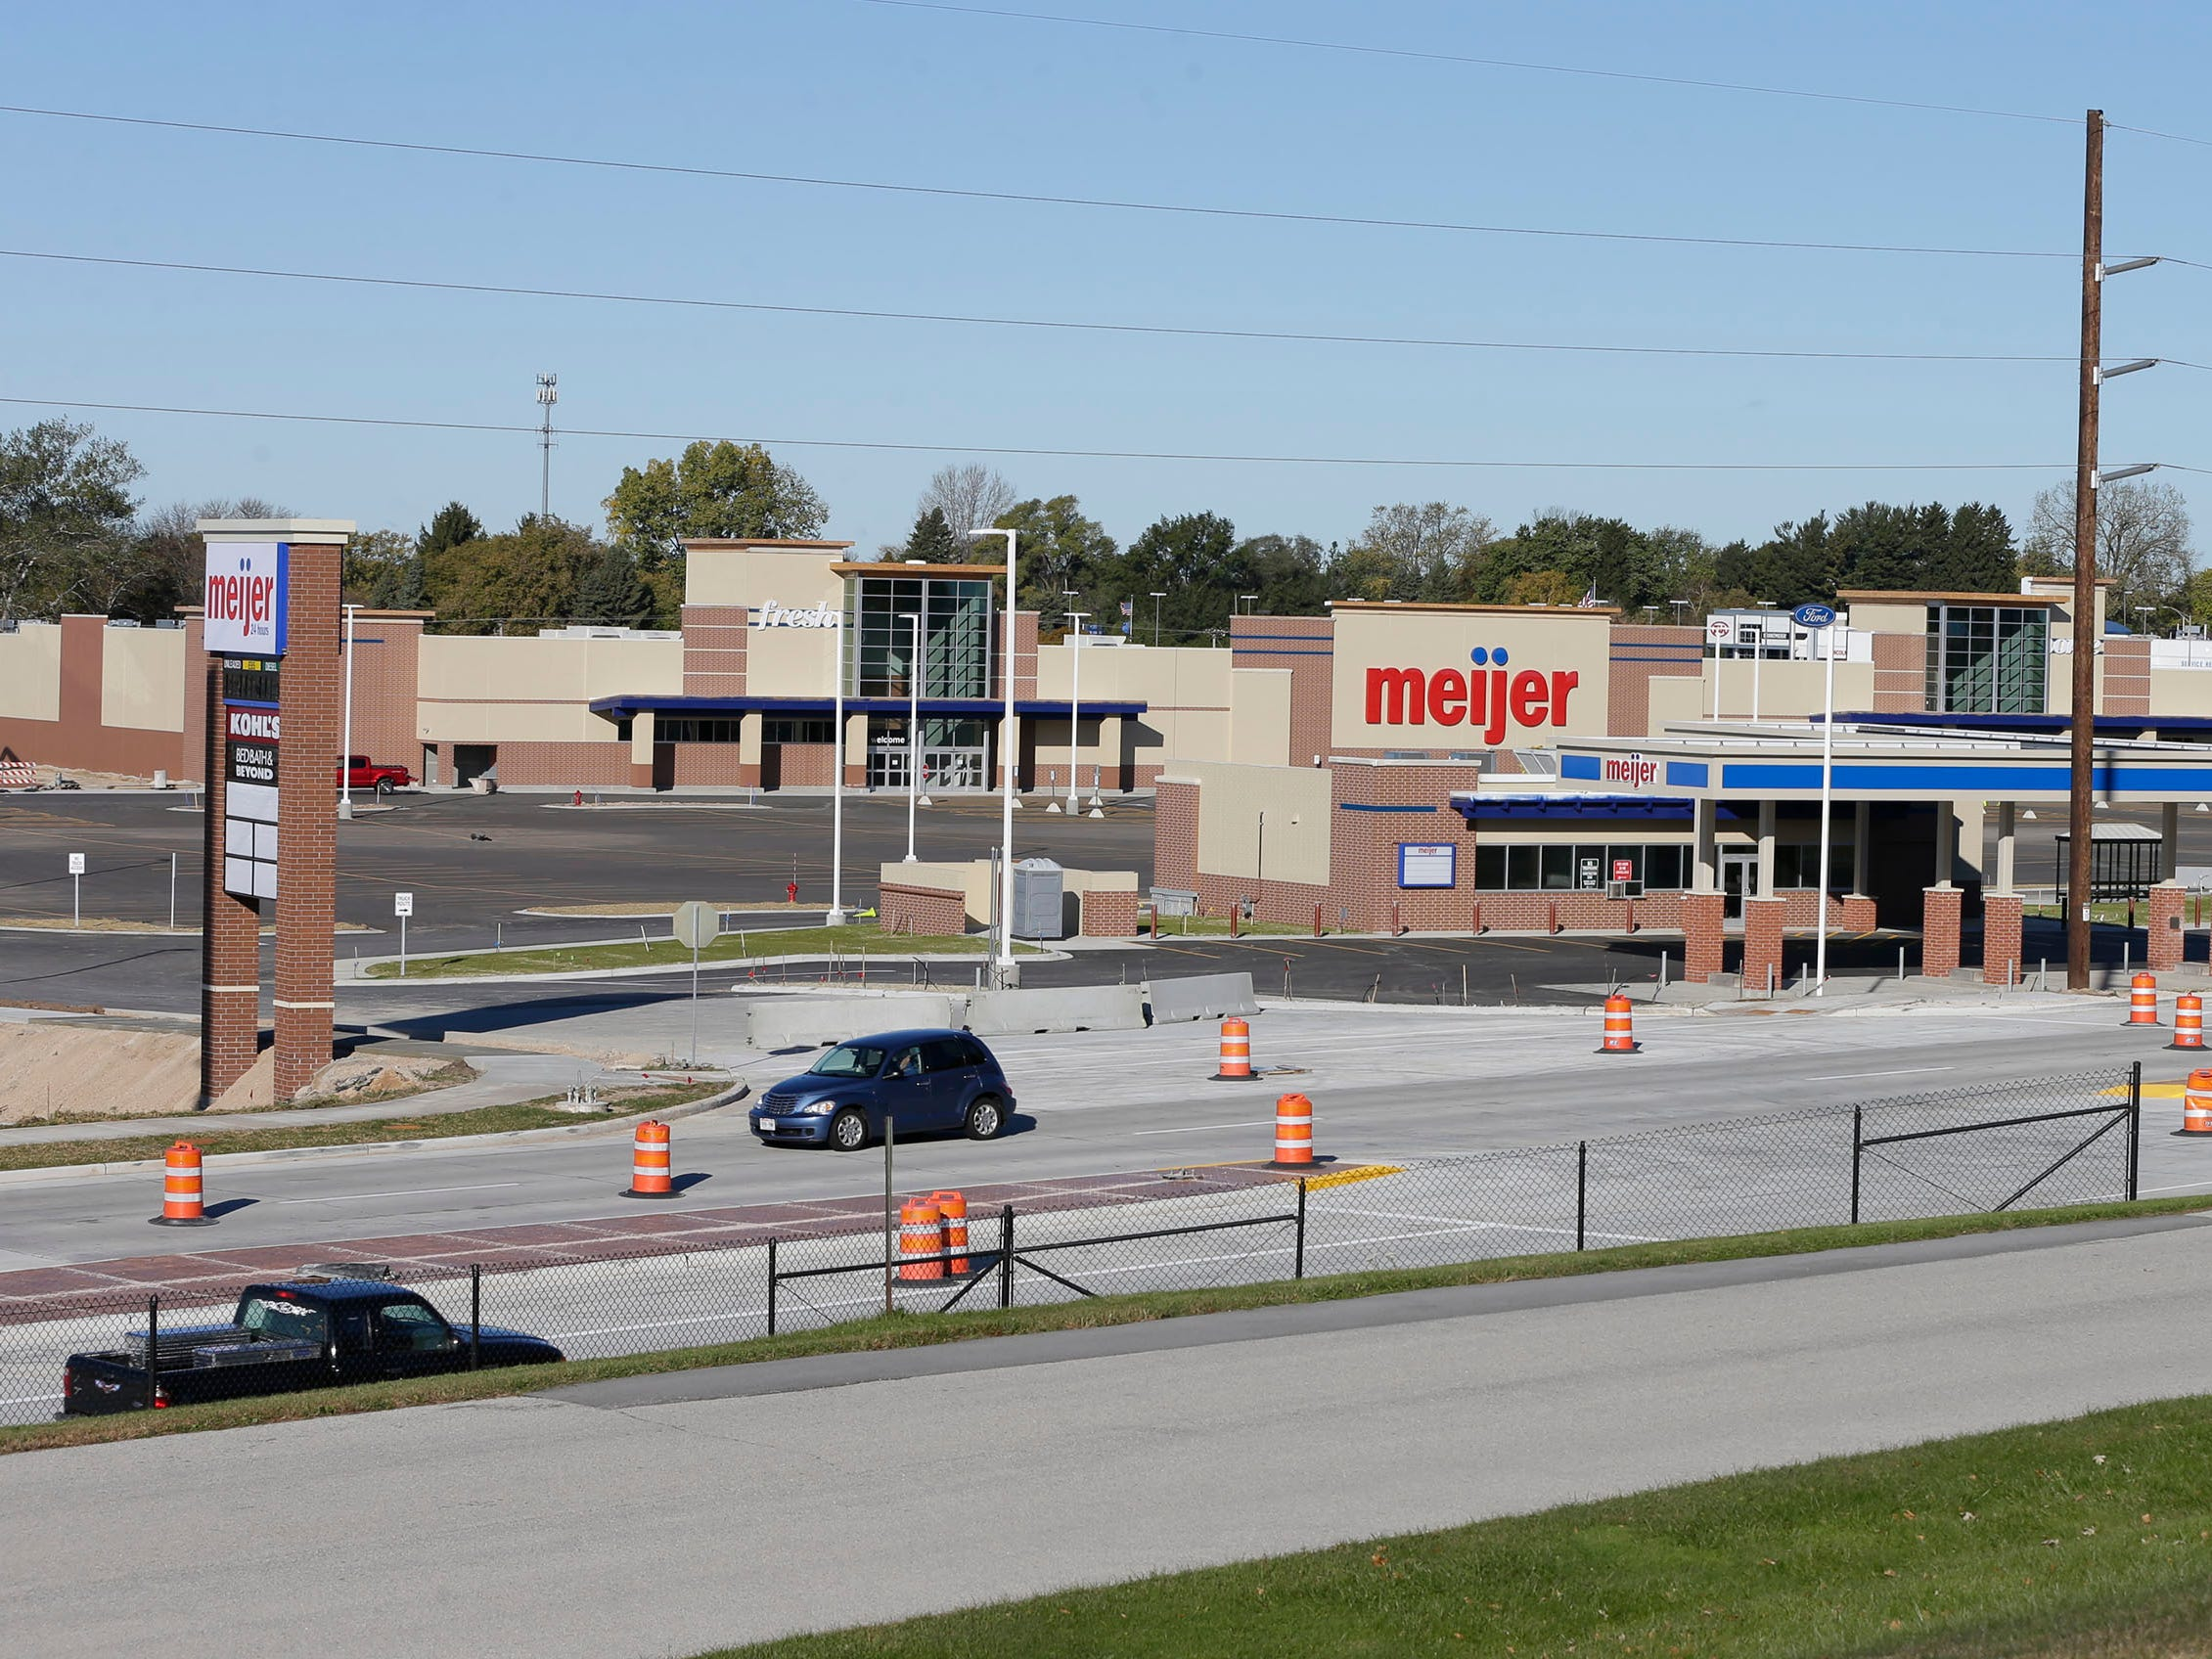 Taylor Drive reconstruction and Meijers beginning to appear finished as seen, Tuesday October 23, 2018, in Sheboygan, Wis. The new sign that replaces the iconic Sheboygan Memorial Mall is seen at left.